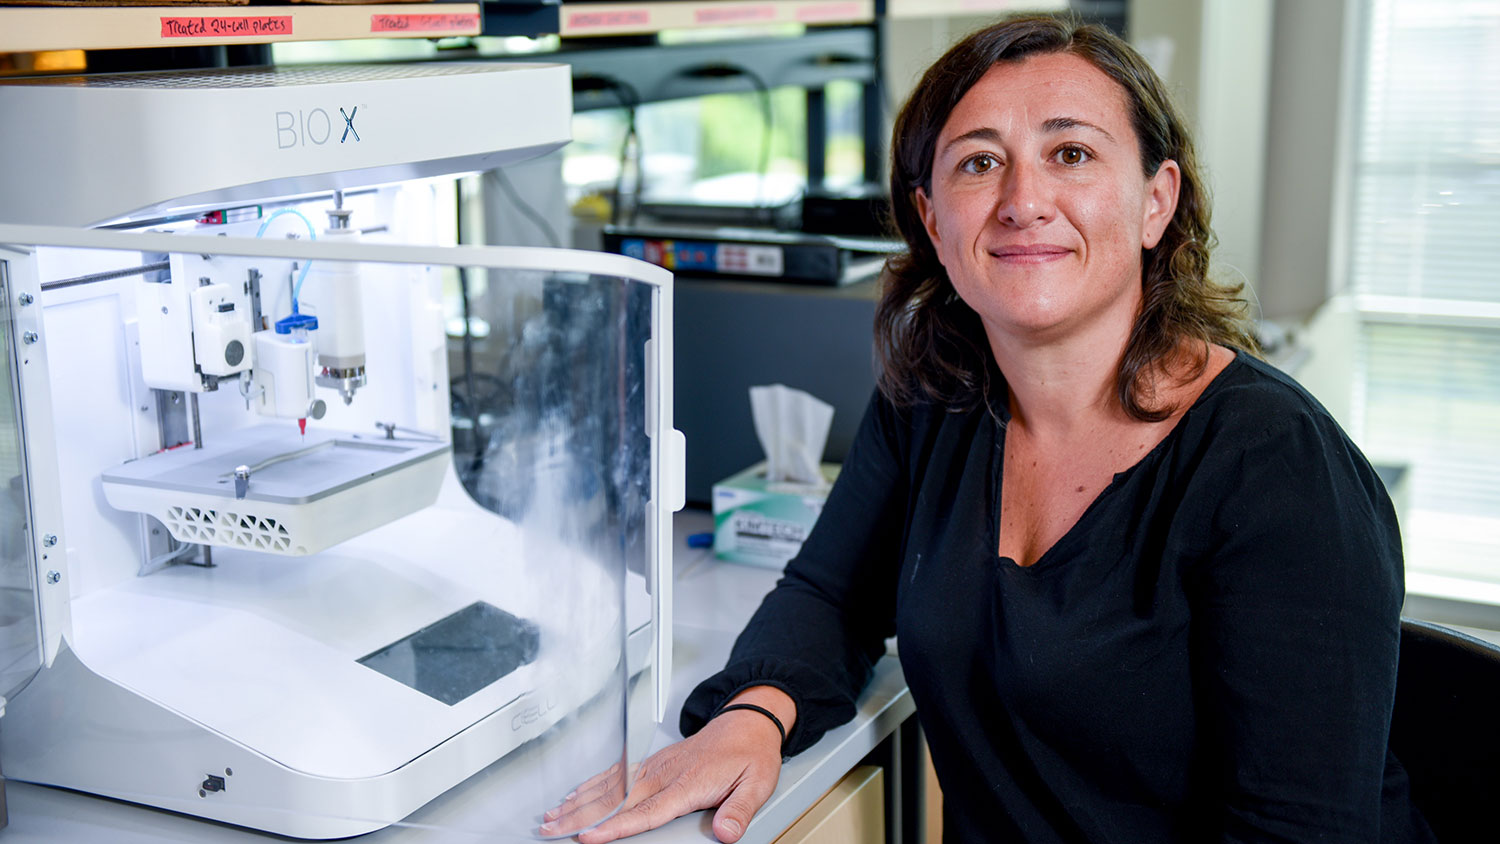 Ross Sozzani next to a 3D bioprinter she uses for her research